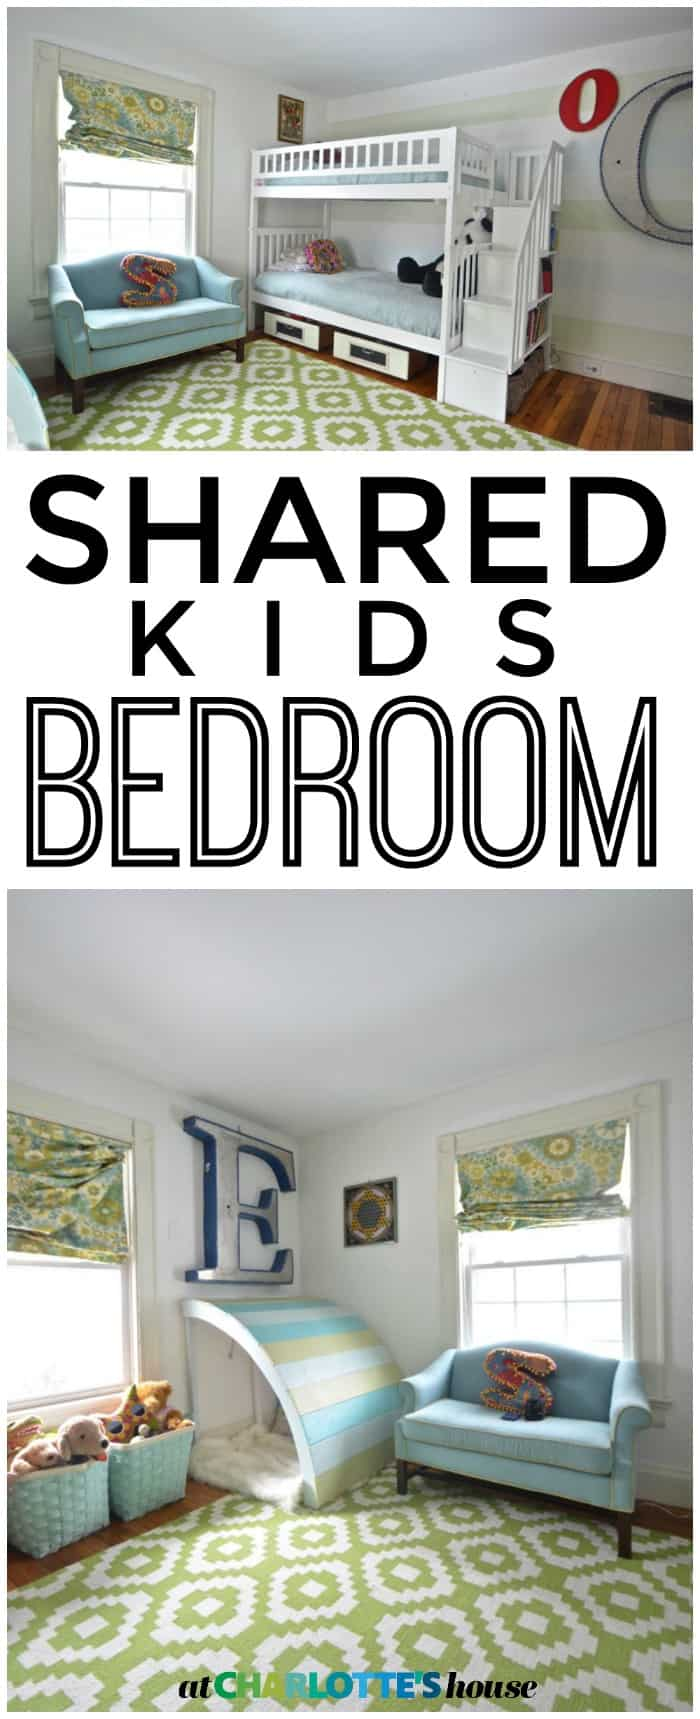 Boy and girl shared bedroom design.